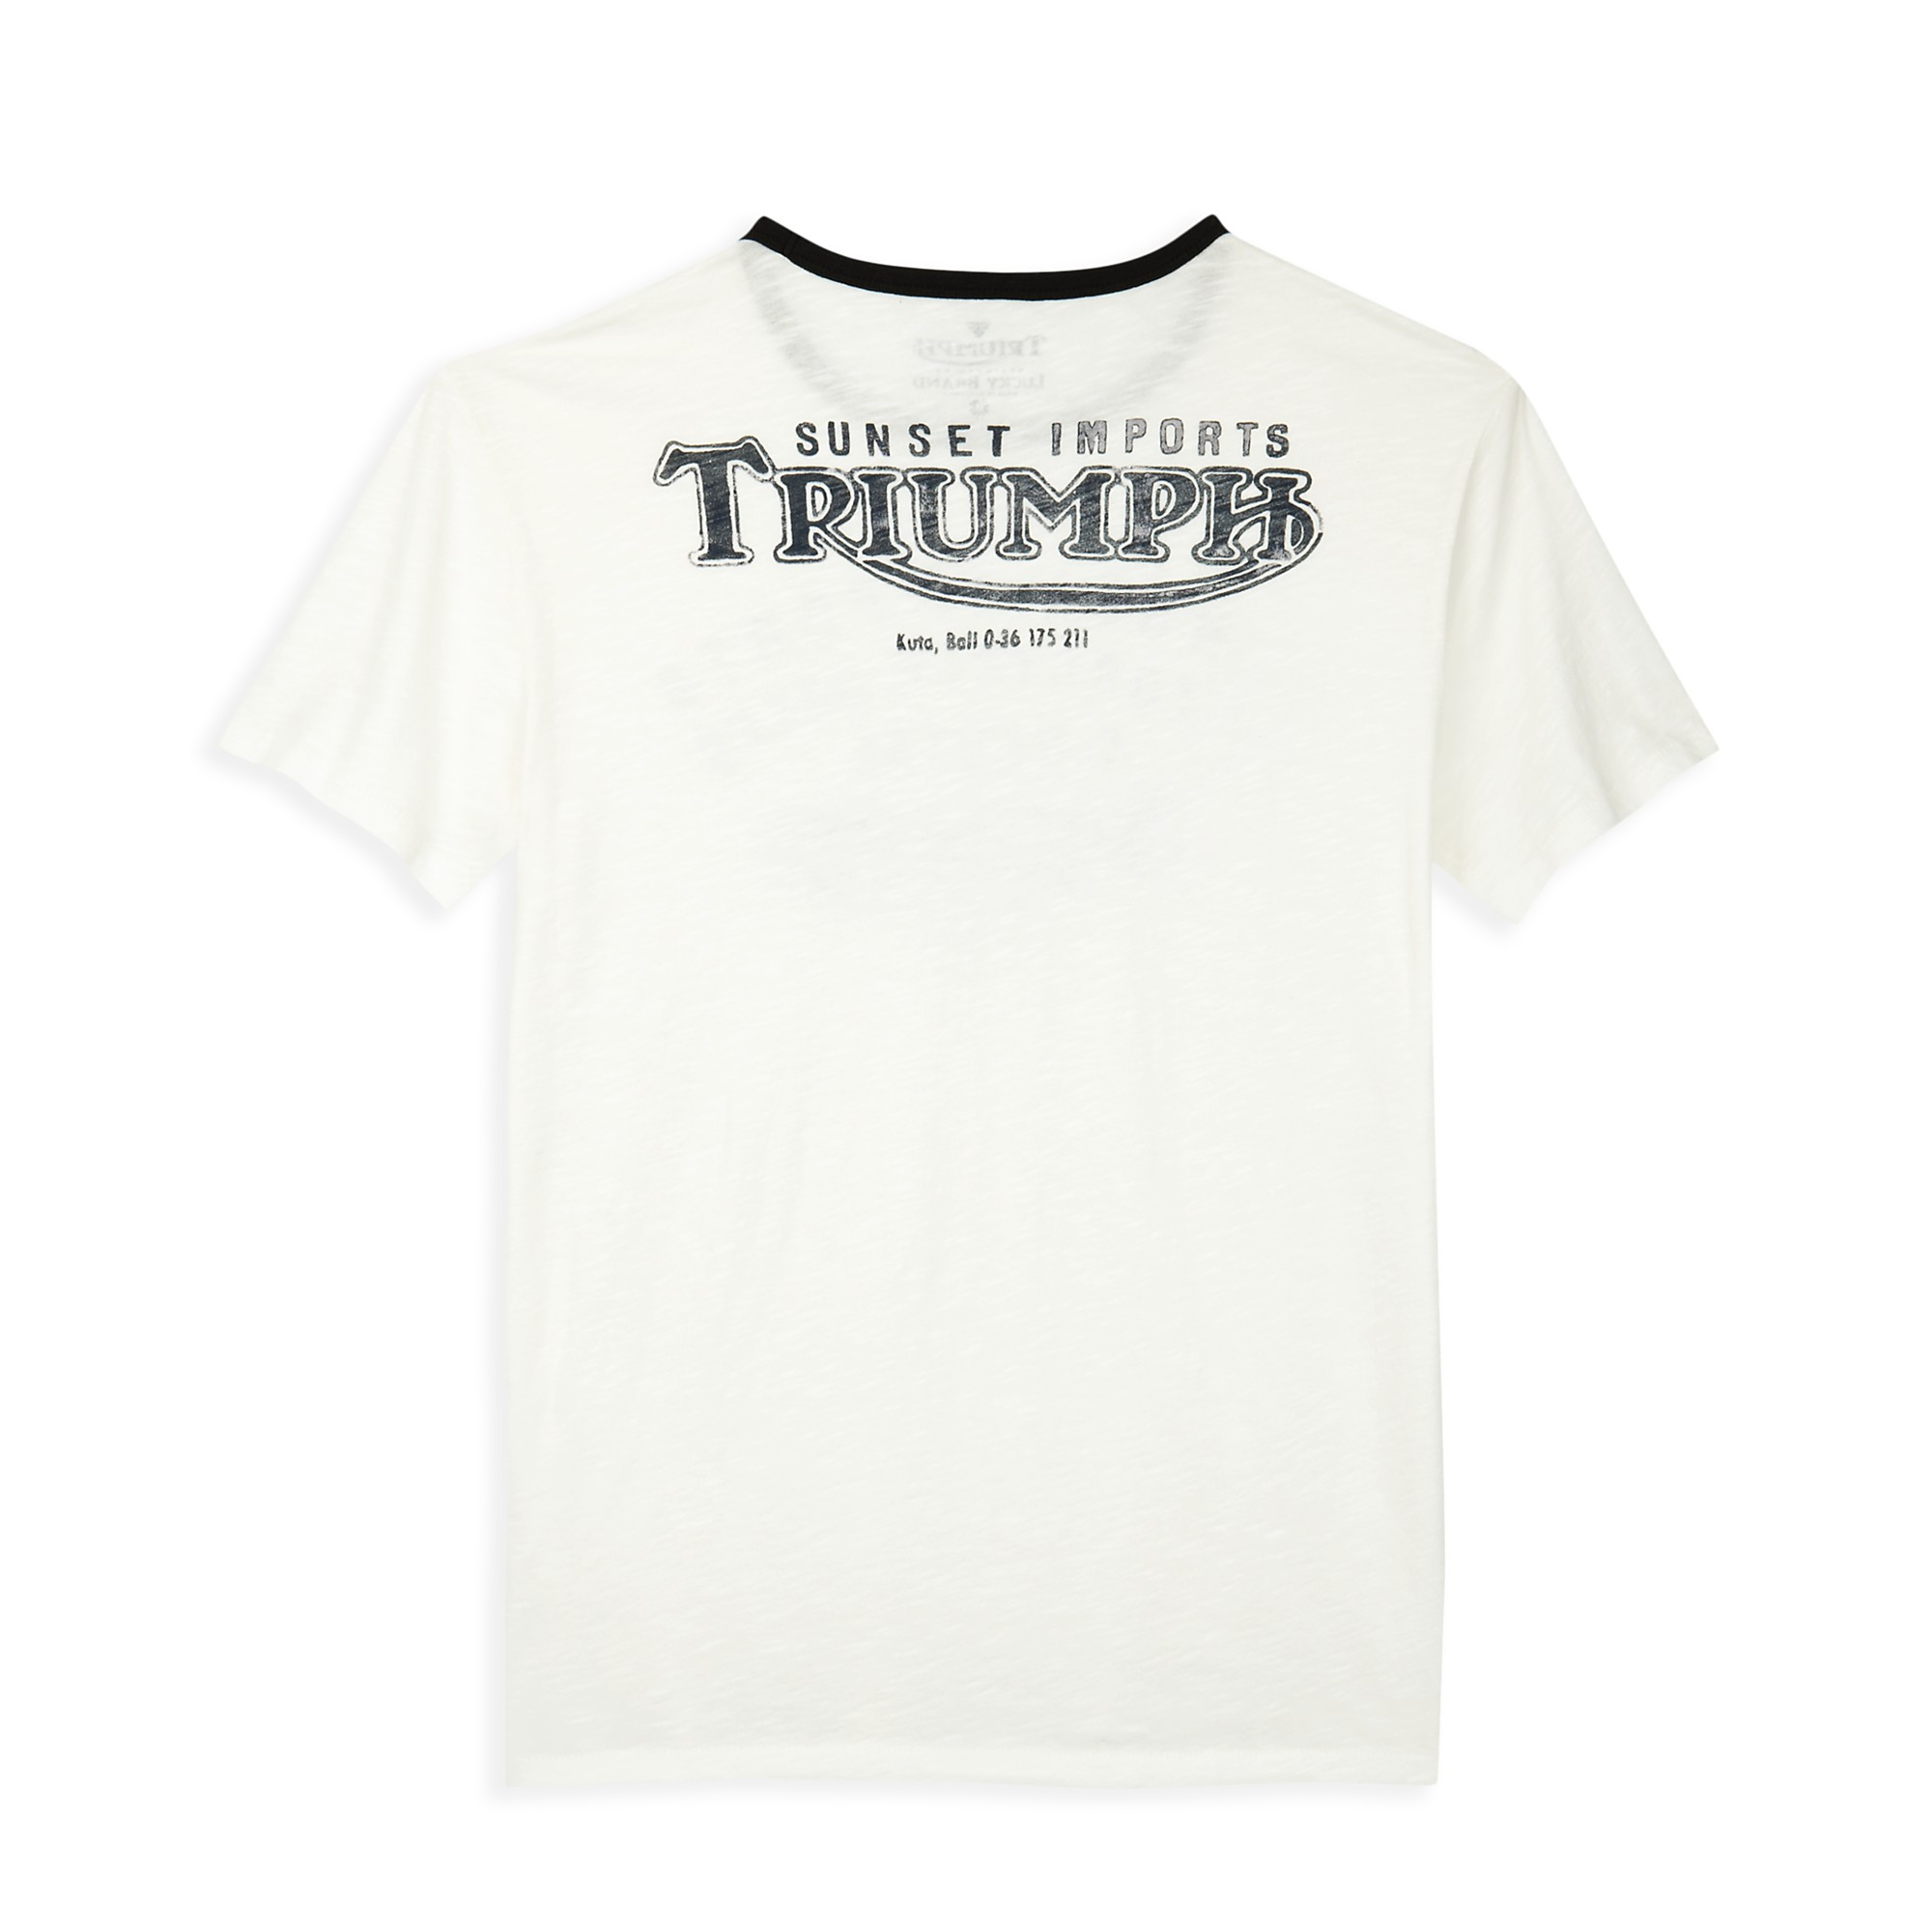 f2ca8b6eb Lucky Brand Triumph Sunset Imports Tshirt in White for Men - Lyst